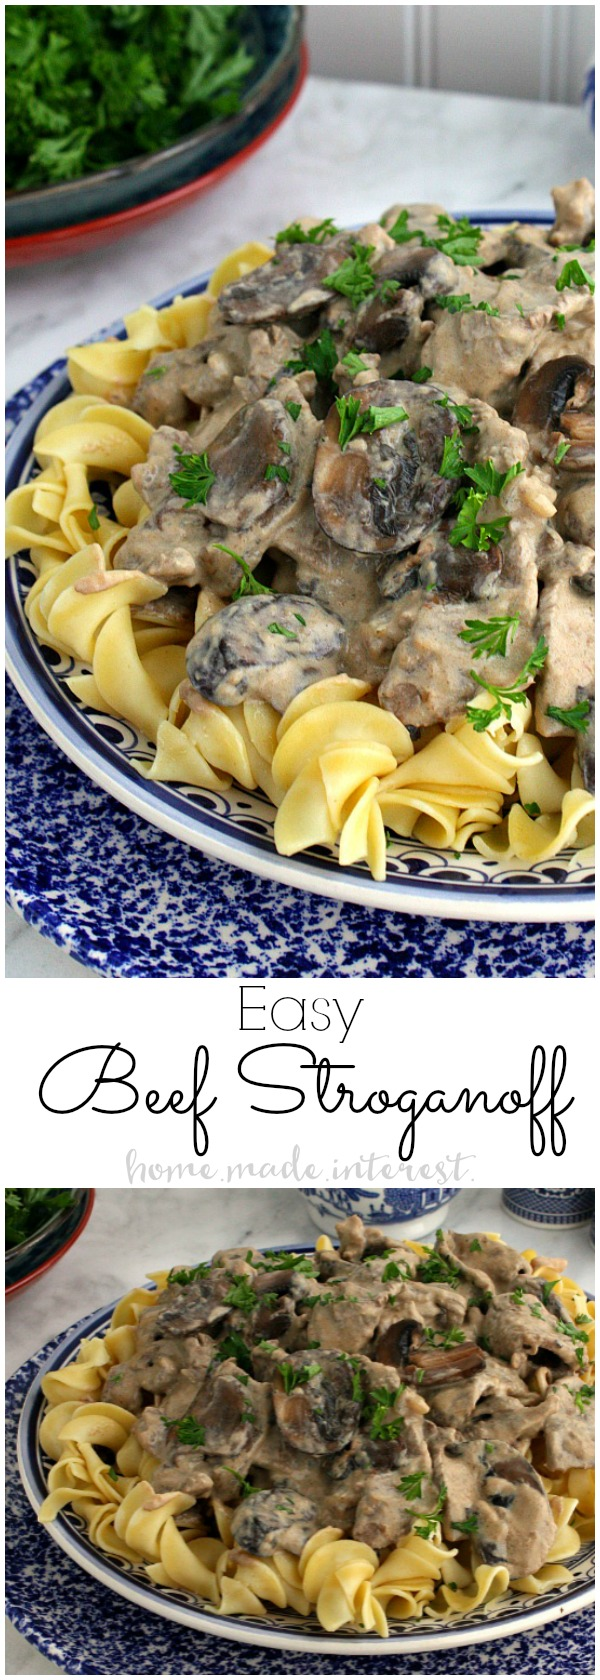 This creamy Beef Stroganoff recipe is a classic comfort food. This easy dinner recipe is quick to make with strips of beef cooked in a creamy sour cream sauce and served over rice or noodles. It's an easy weeknight recipe that kids and adults will love. Perfect back to school recipe!